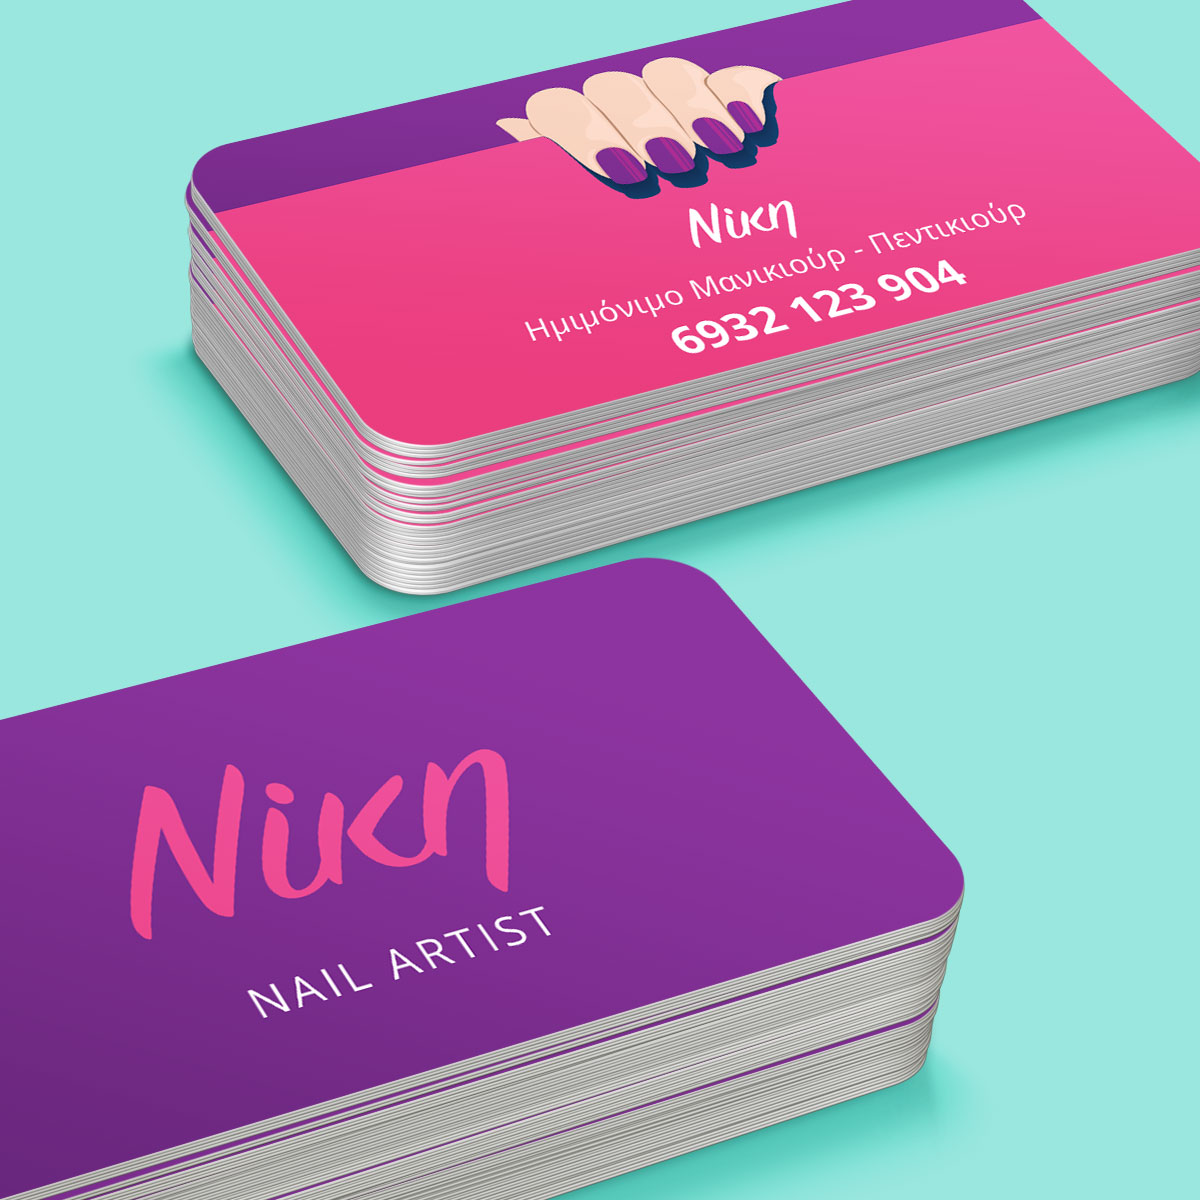 Nail salon designs business cards